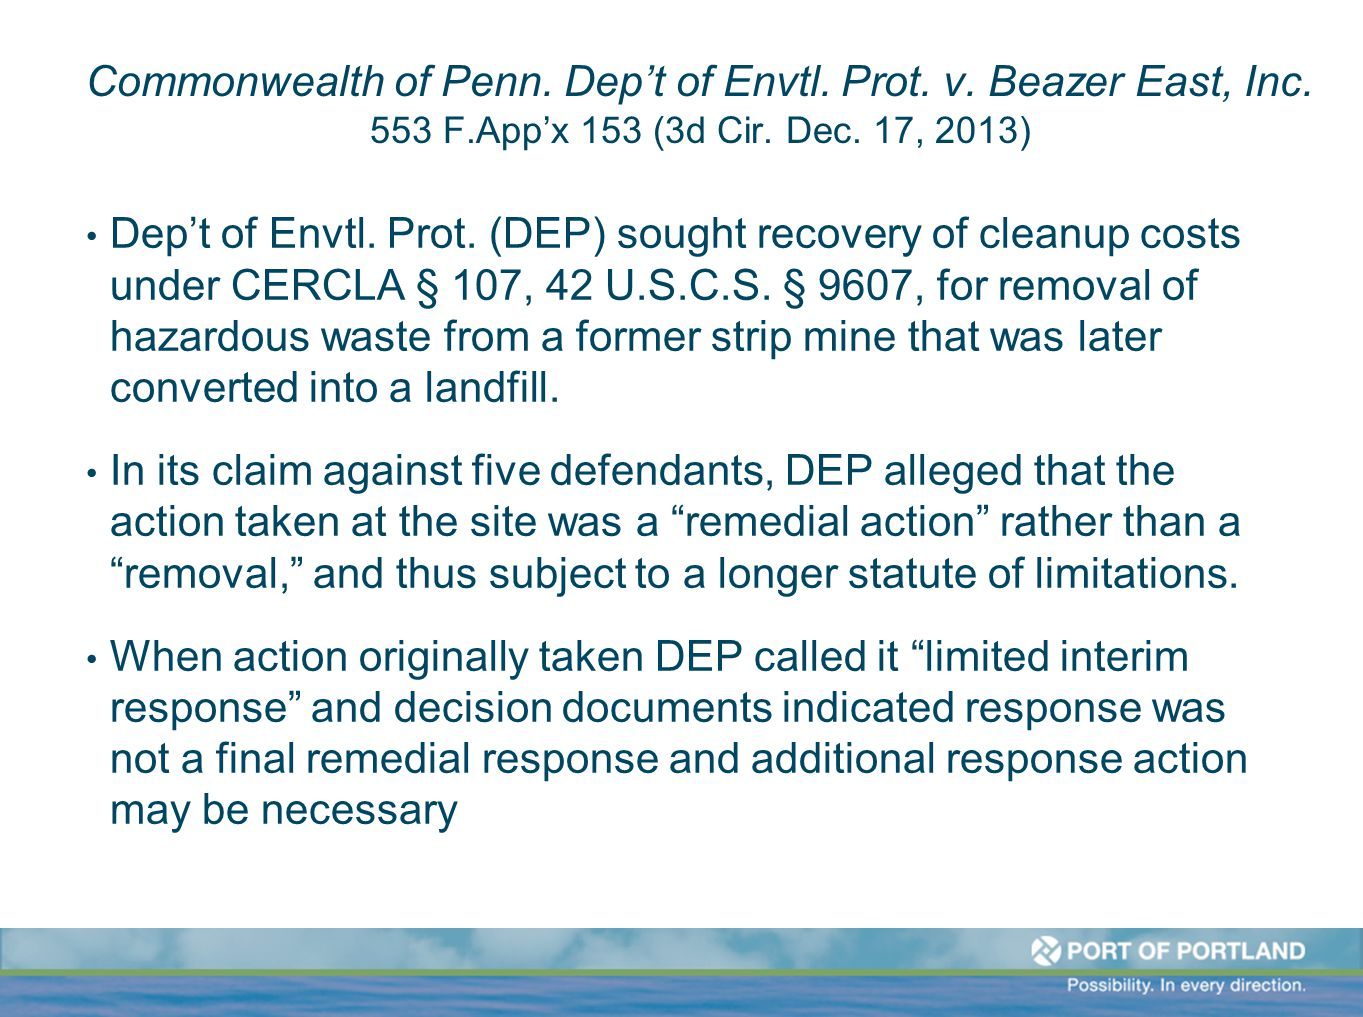 Commonwealth of Penn. Dep't of Envtl. Prot. v. Beazer East, Inc. 553 F.App'x 153 (3d Cir. Dec. 17, 2013) Dep't of Envtl. Prot. (DEP) sought recovery o